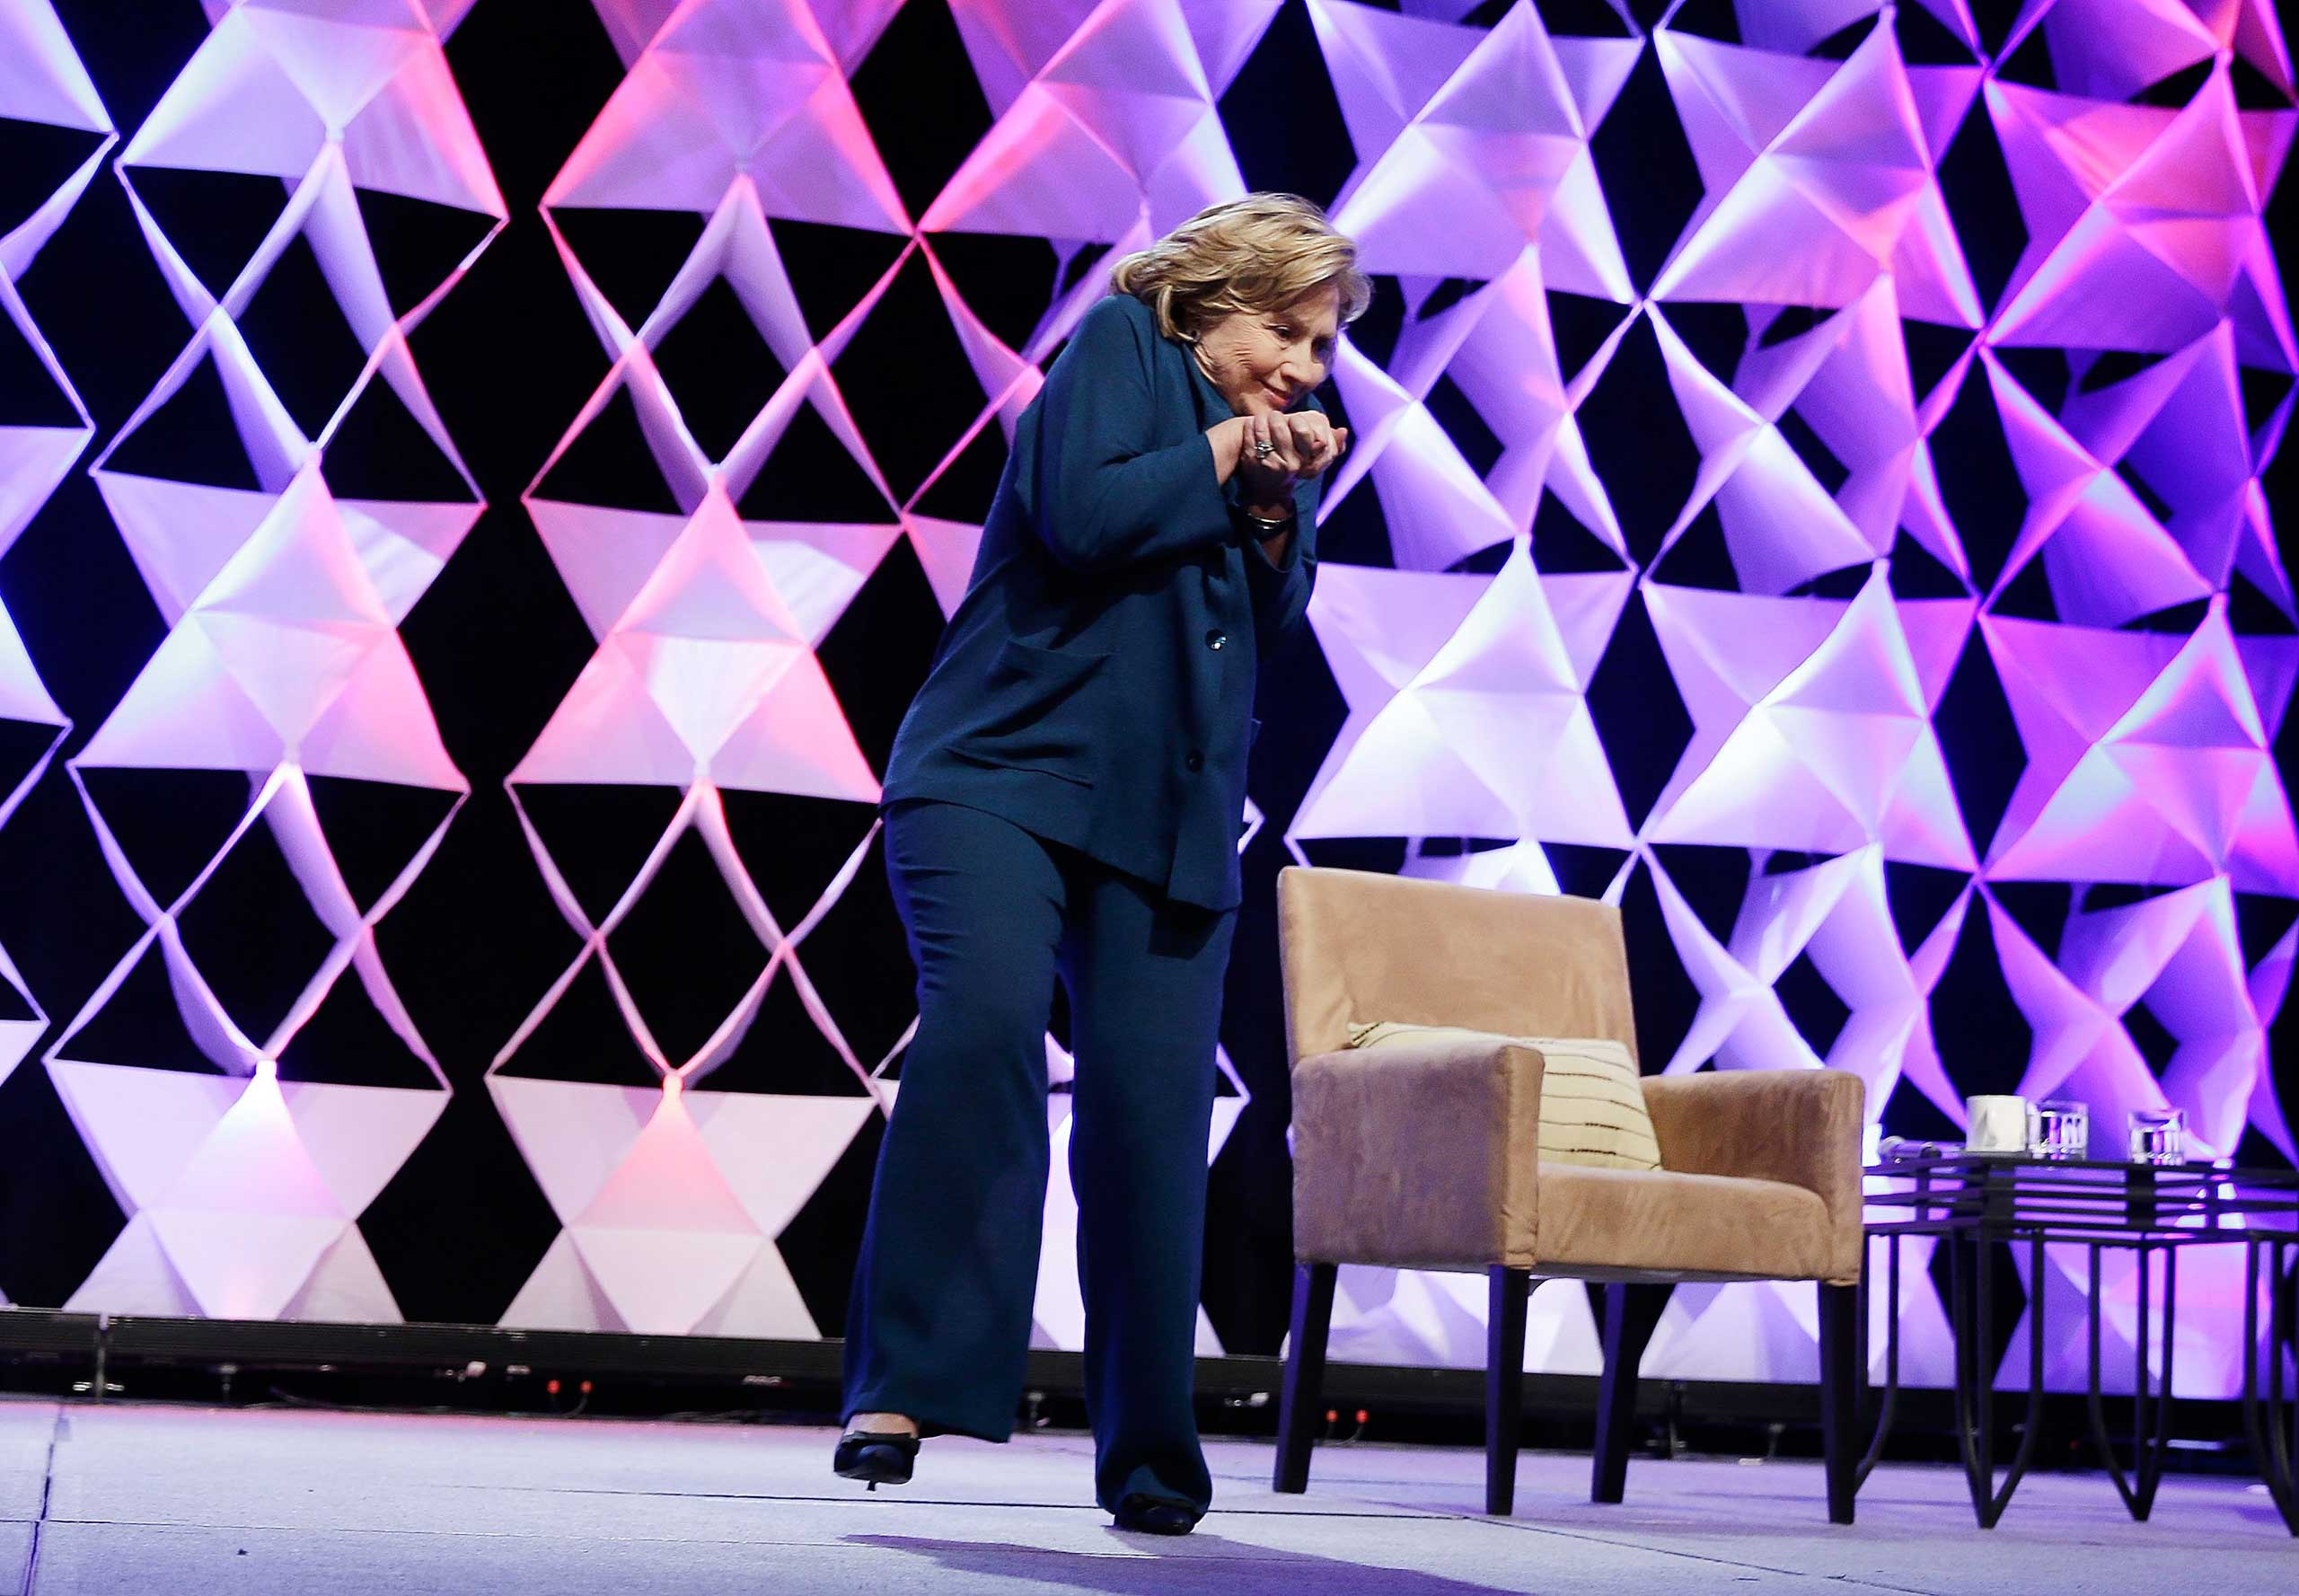 Former Secretary of State Hillary Clinton ducks after a woman threw an object toward her while she was delivering remarks at the Institute of Scrap Recycling Industries conference in in Las Vegas, Nev., April 10, 2014.